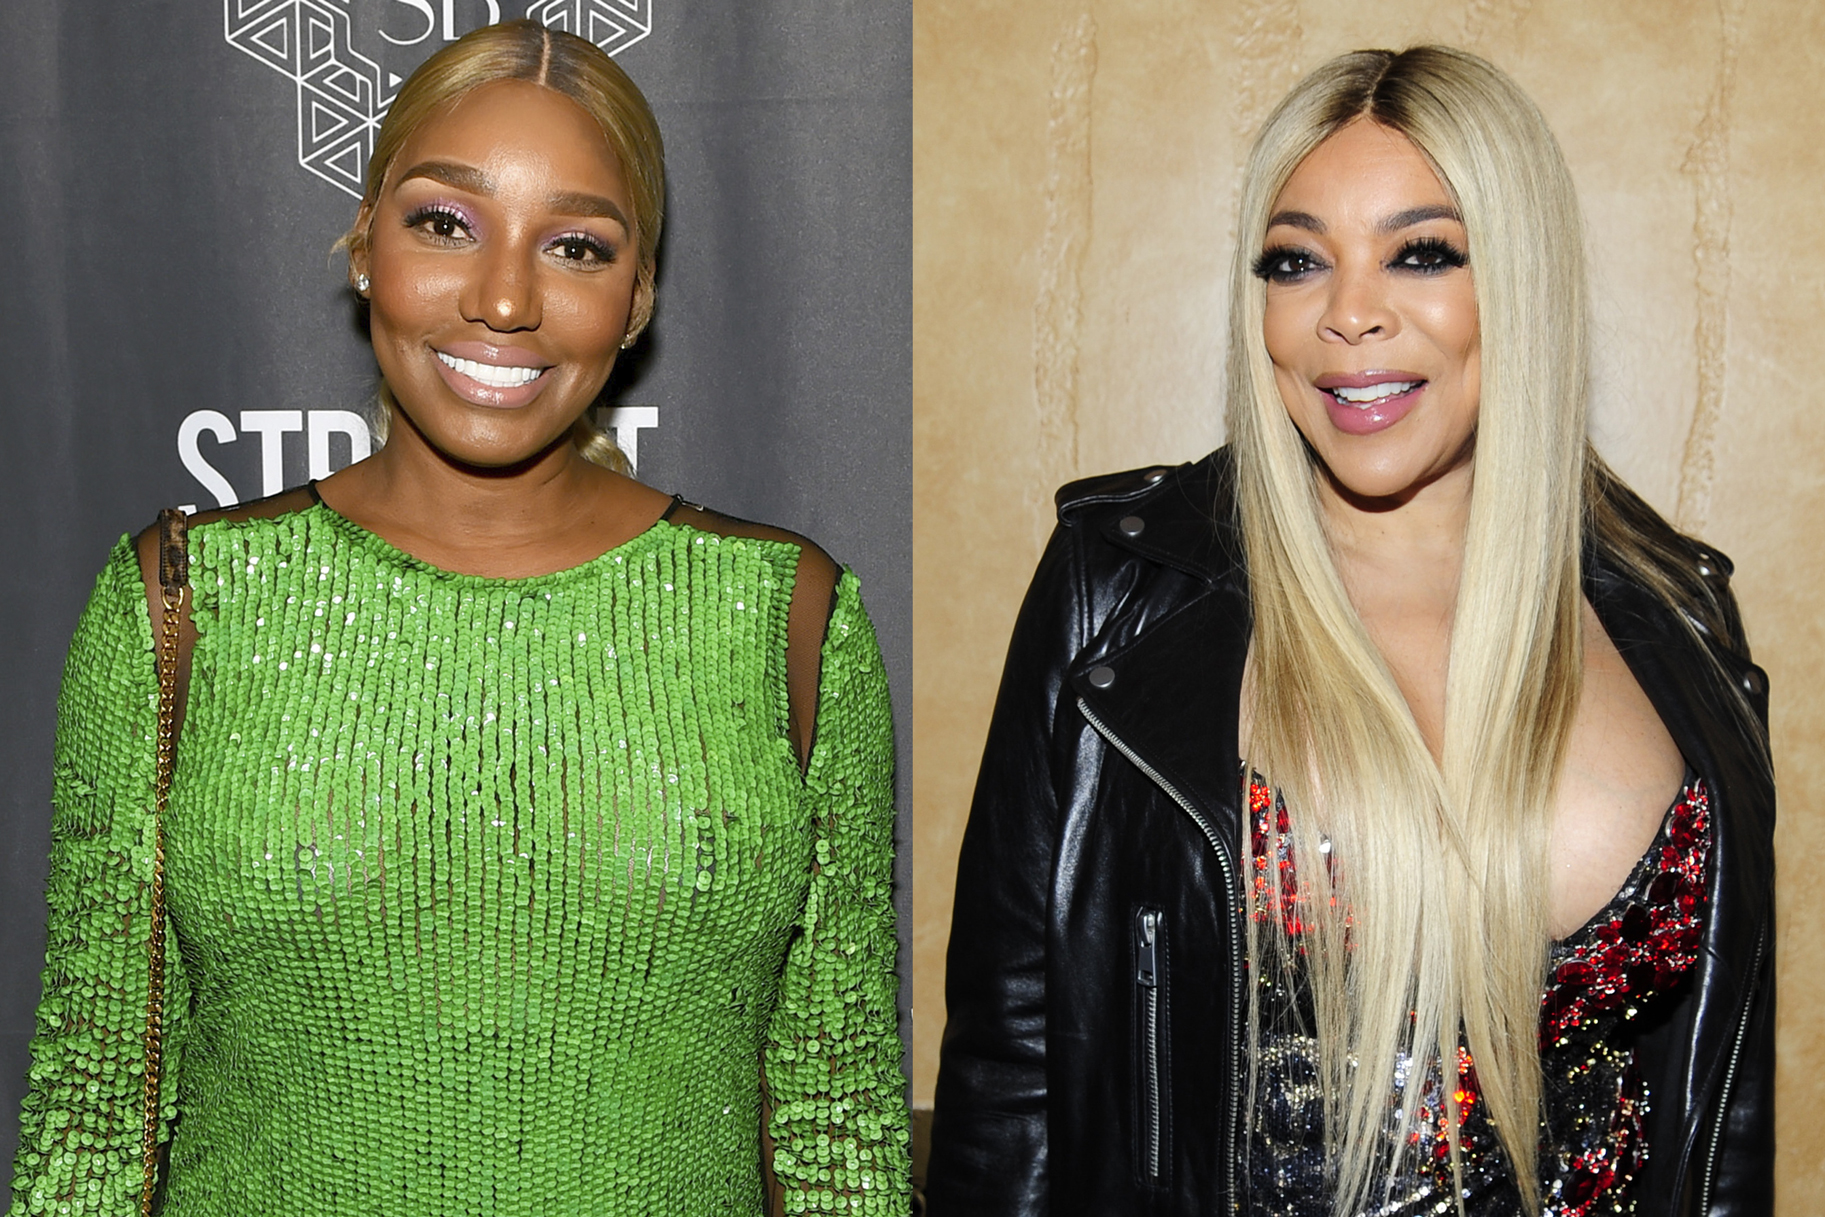 NeNe Leakes Gushes Over Wendy Williams And Tamar Braxton Is Here For This